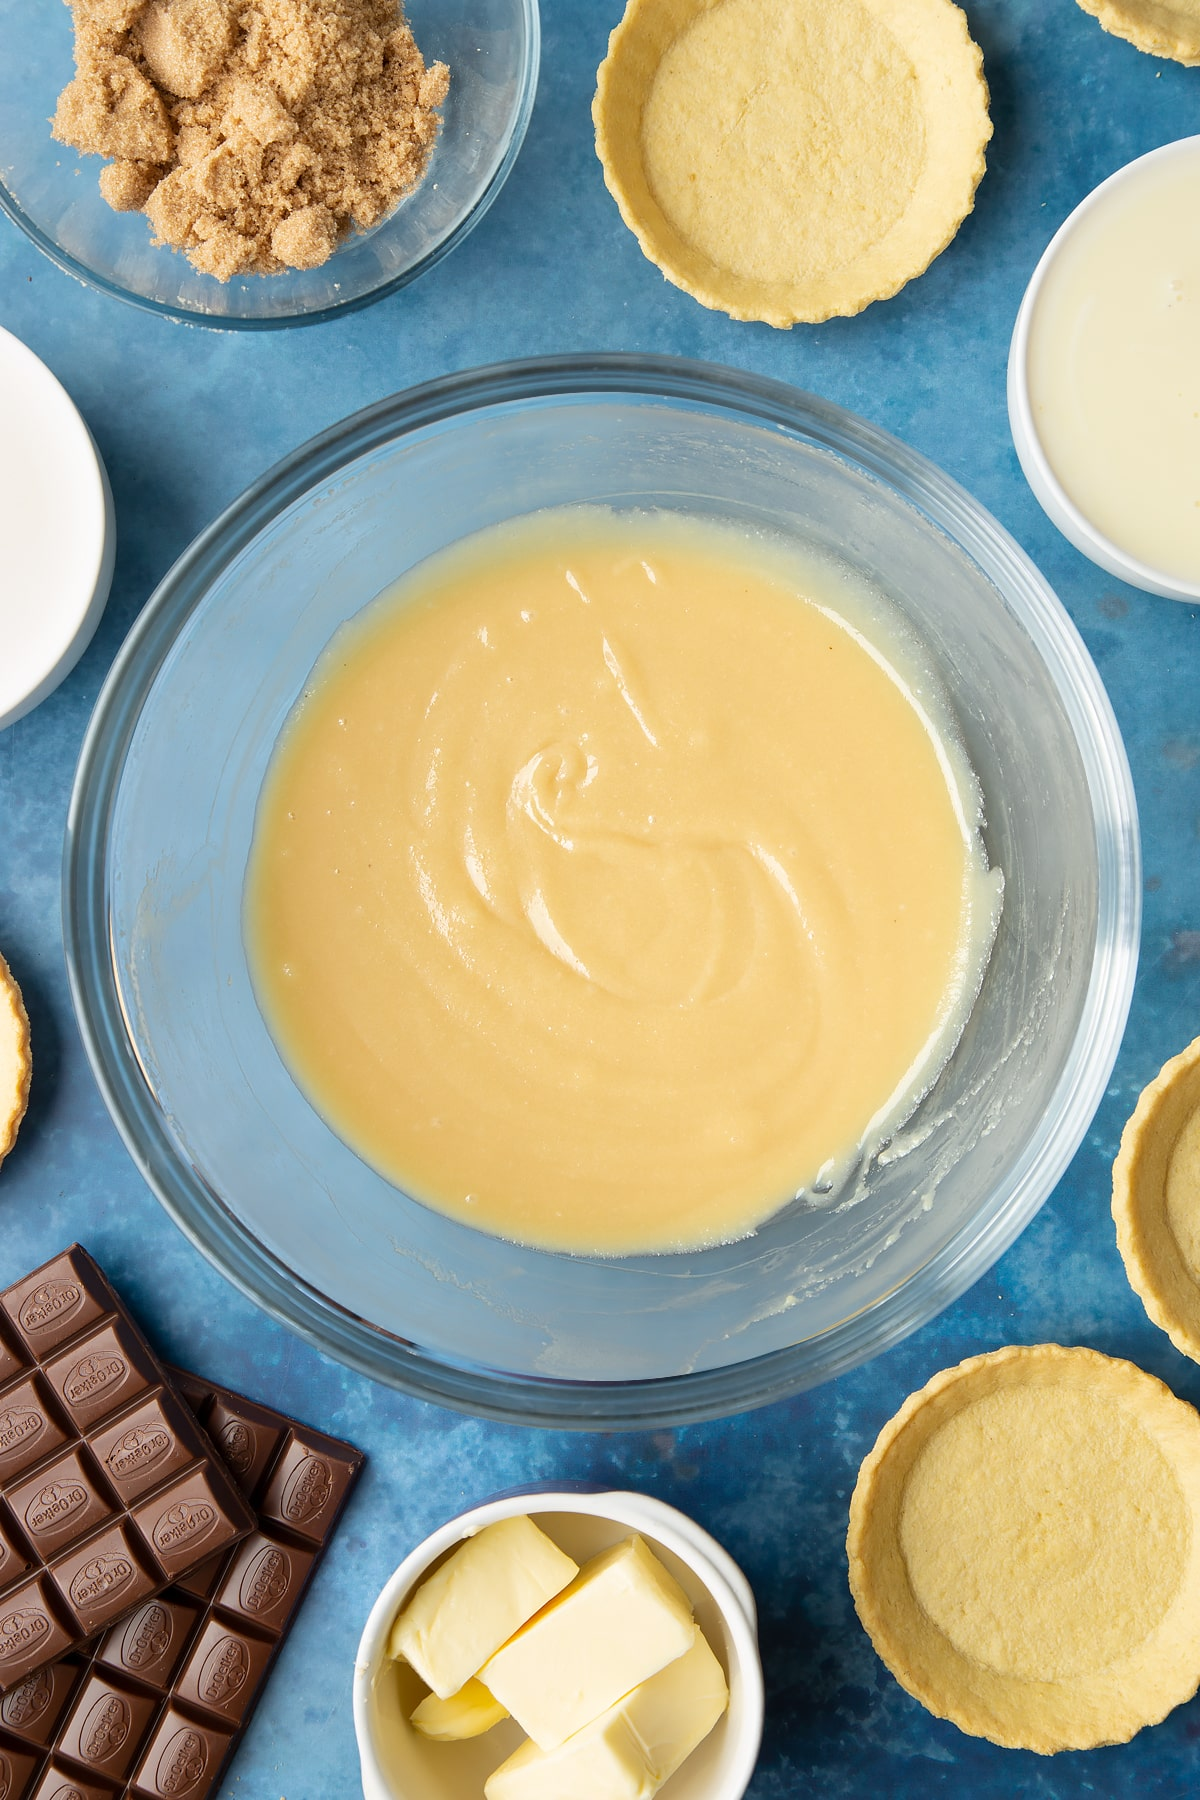 Freshly made caramel in a large mixing bowl. Ingredients to make mini chocolate tarts surround the bowl.